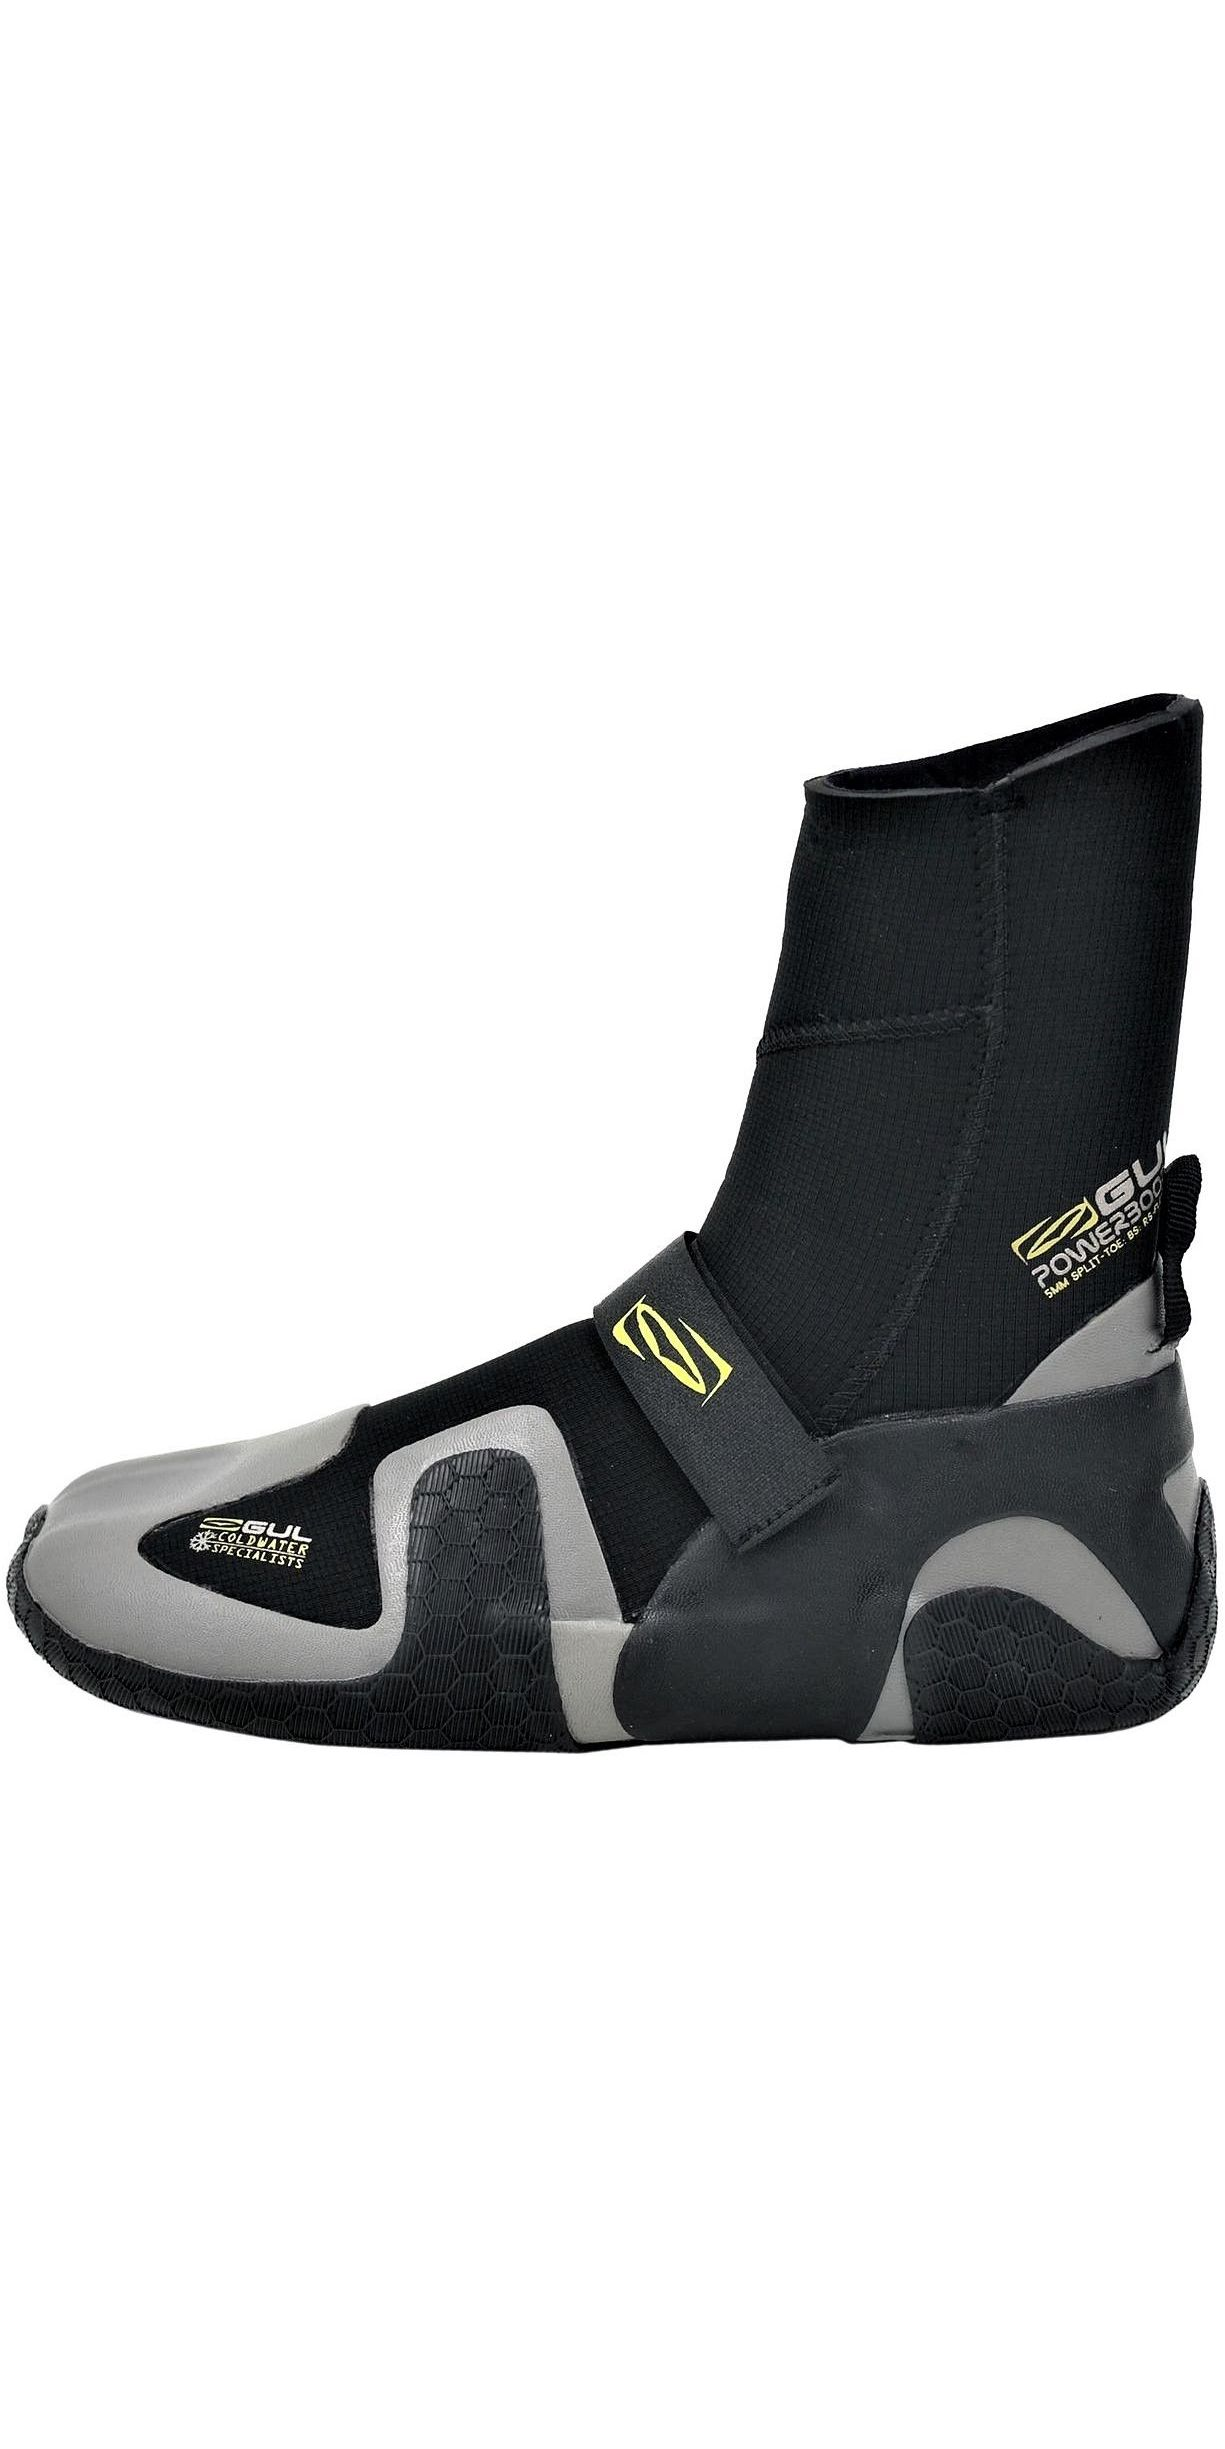 2019 Gul Power 5mm Split Toe Wetsuit Boot Black / grey BO1309-B4